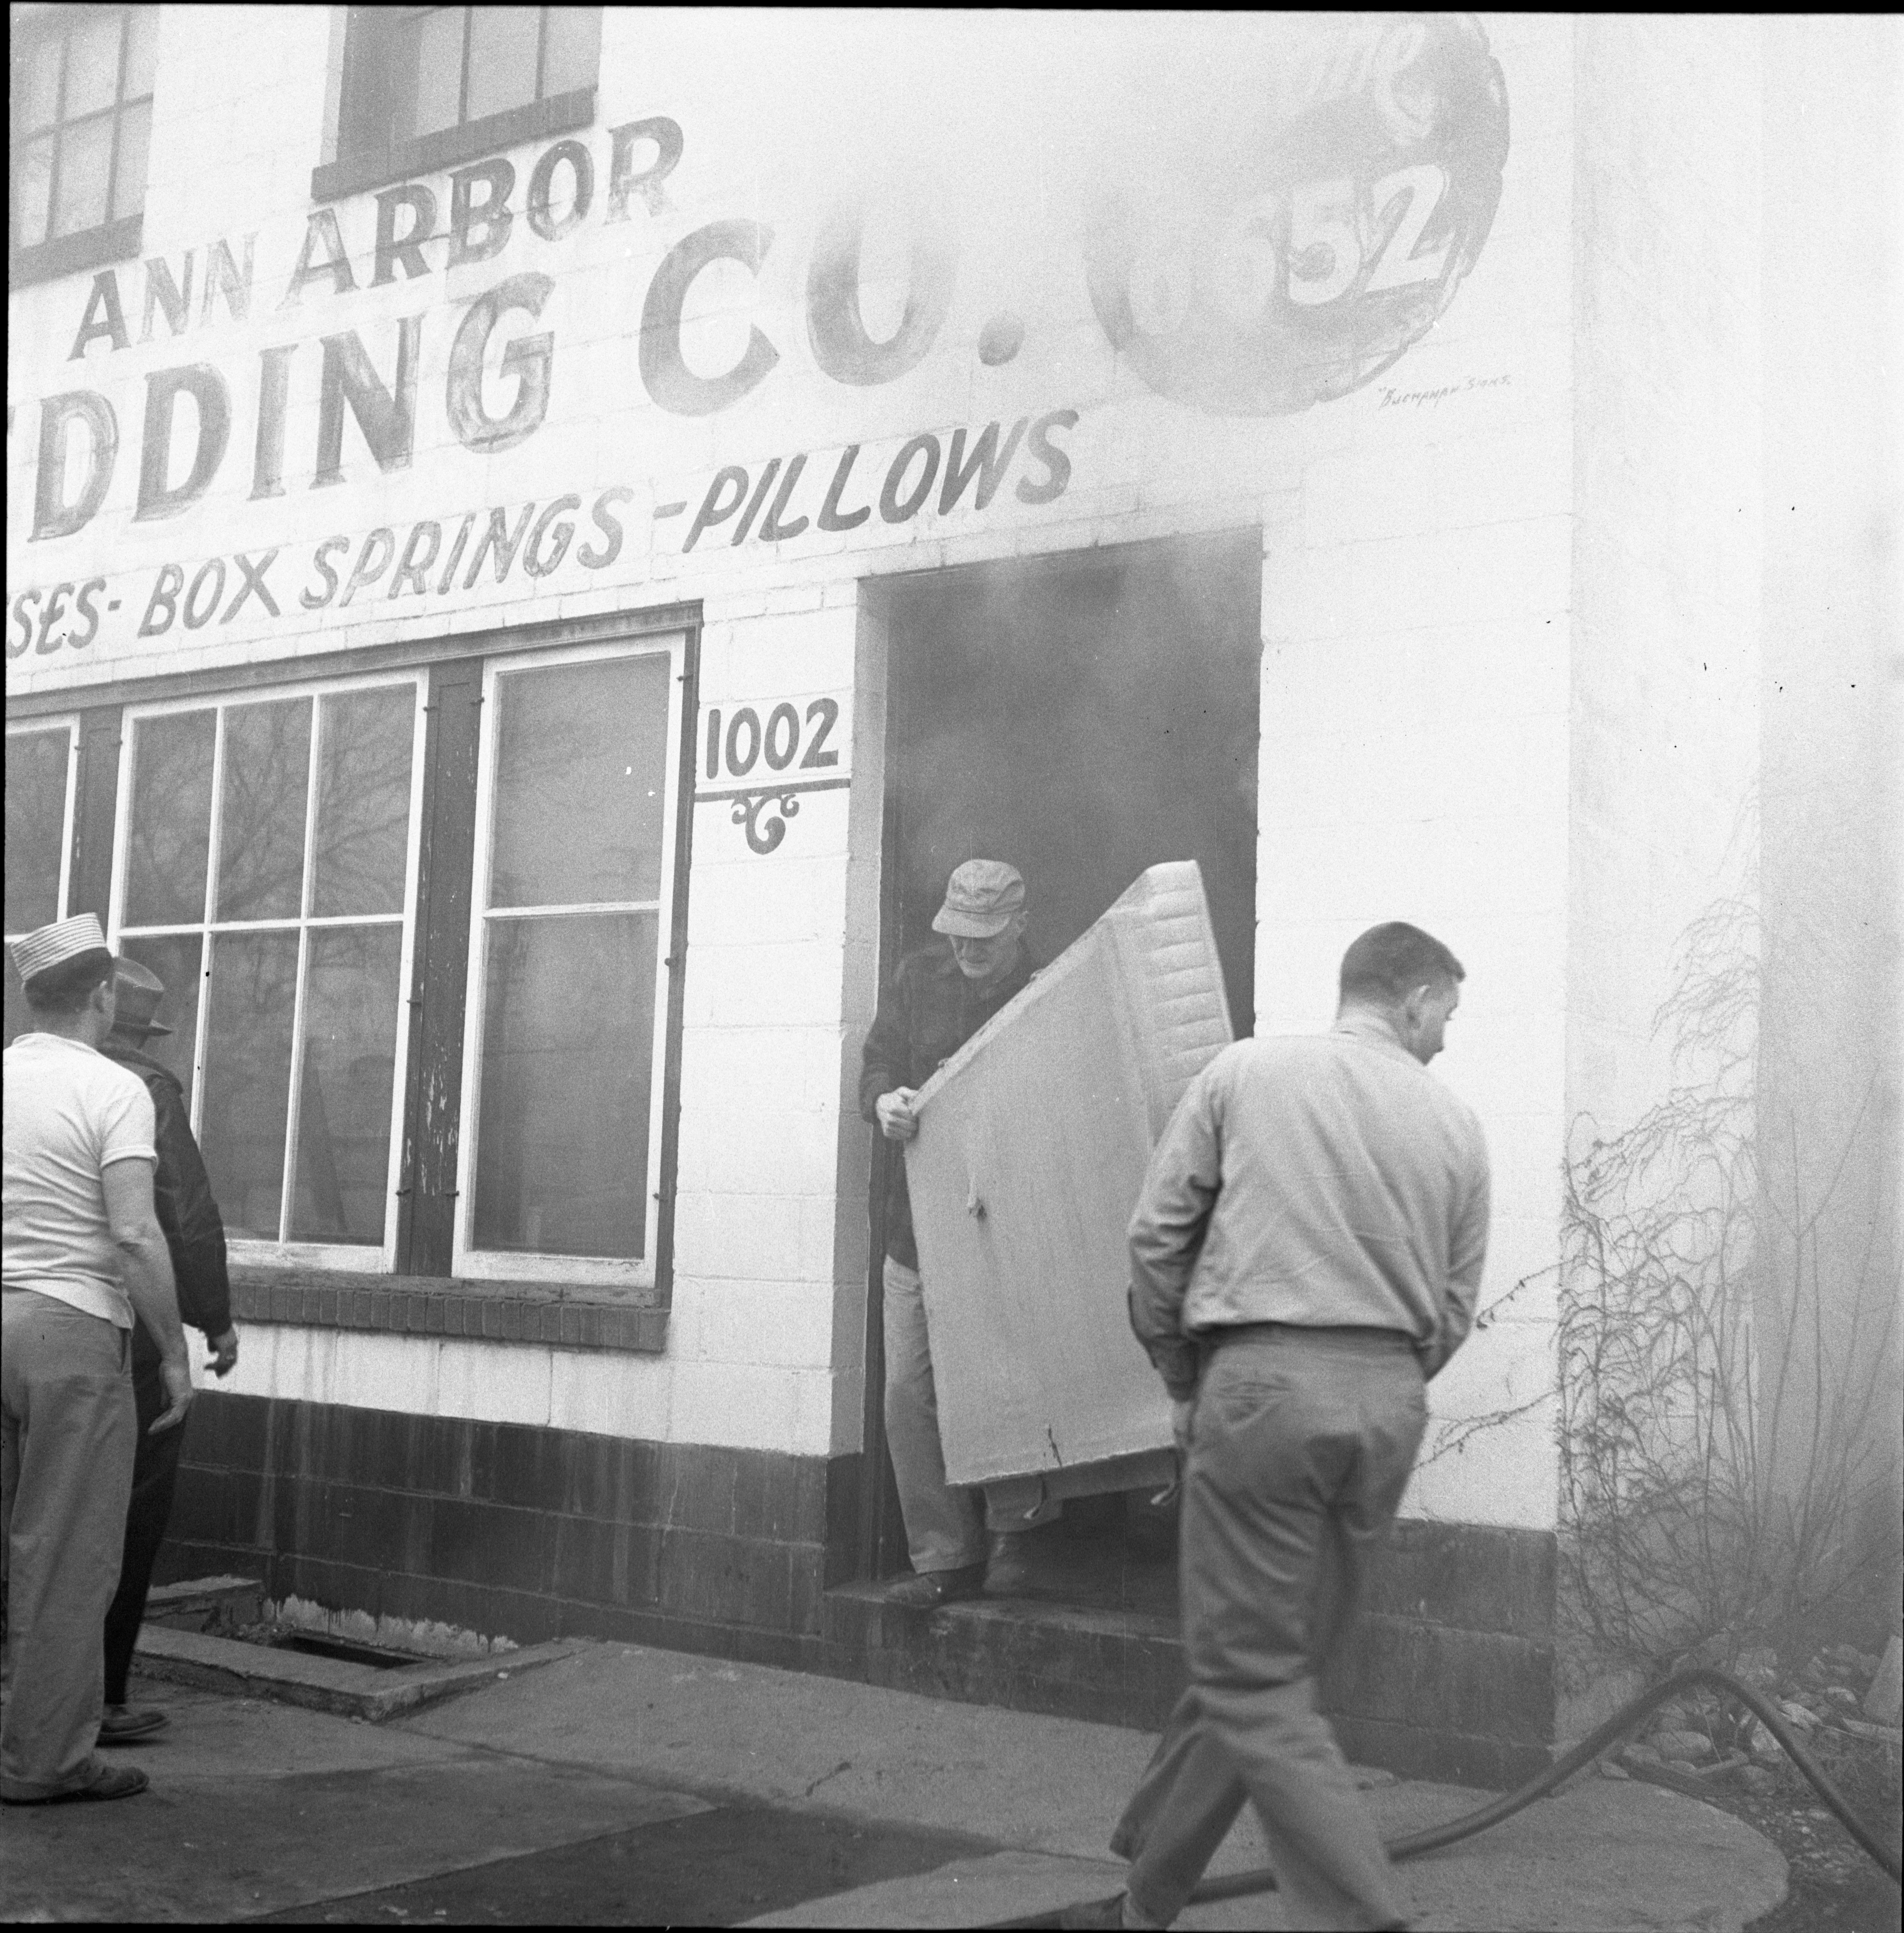 Mattresses Are Carried Out Of The Burning Ann Arbor Bedding Co. Building, February 1957 image